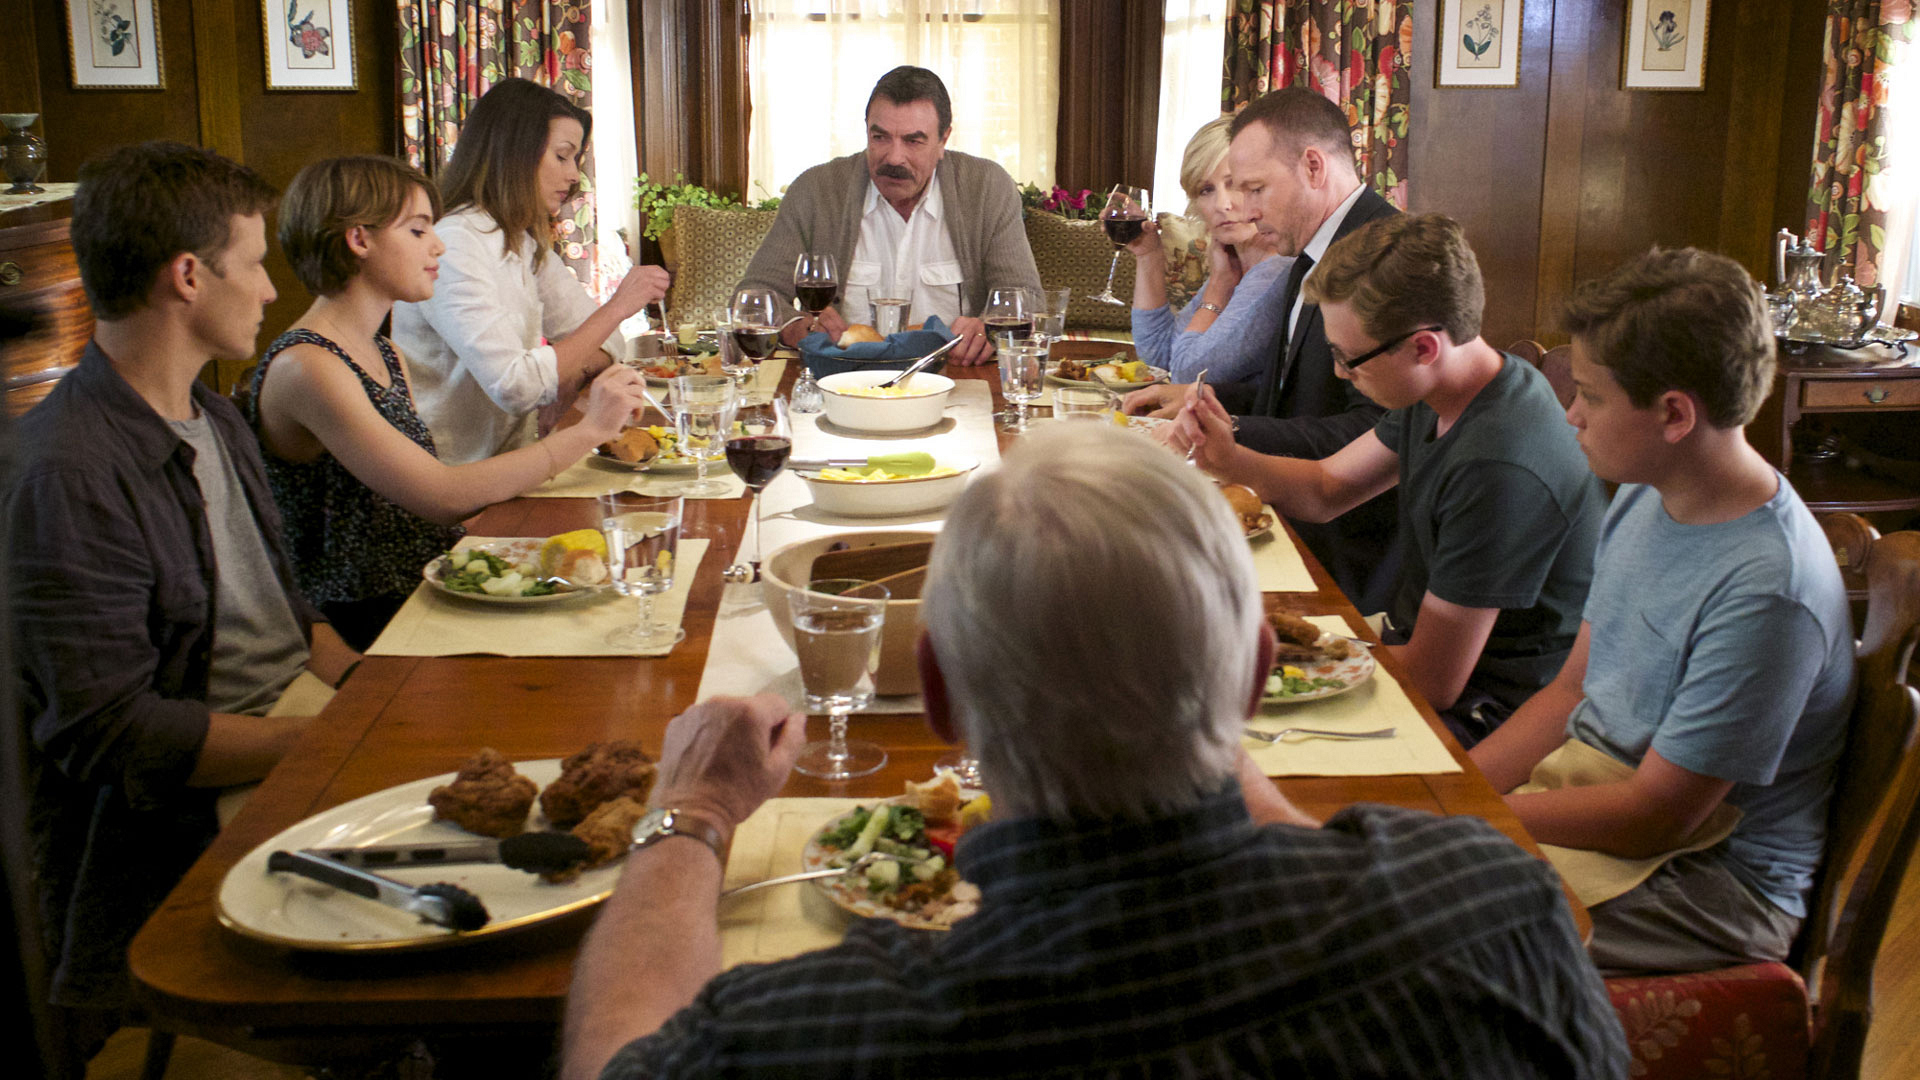 Blue Bloods returns for a 7th season on Friday, Sept. 23 at 10/9c.